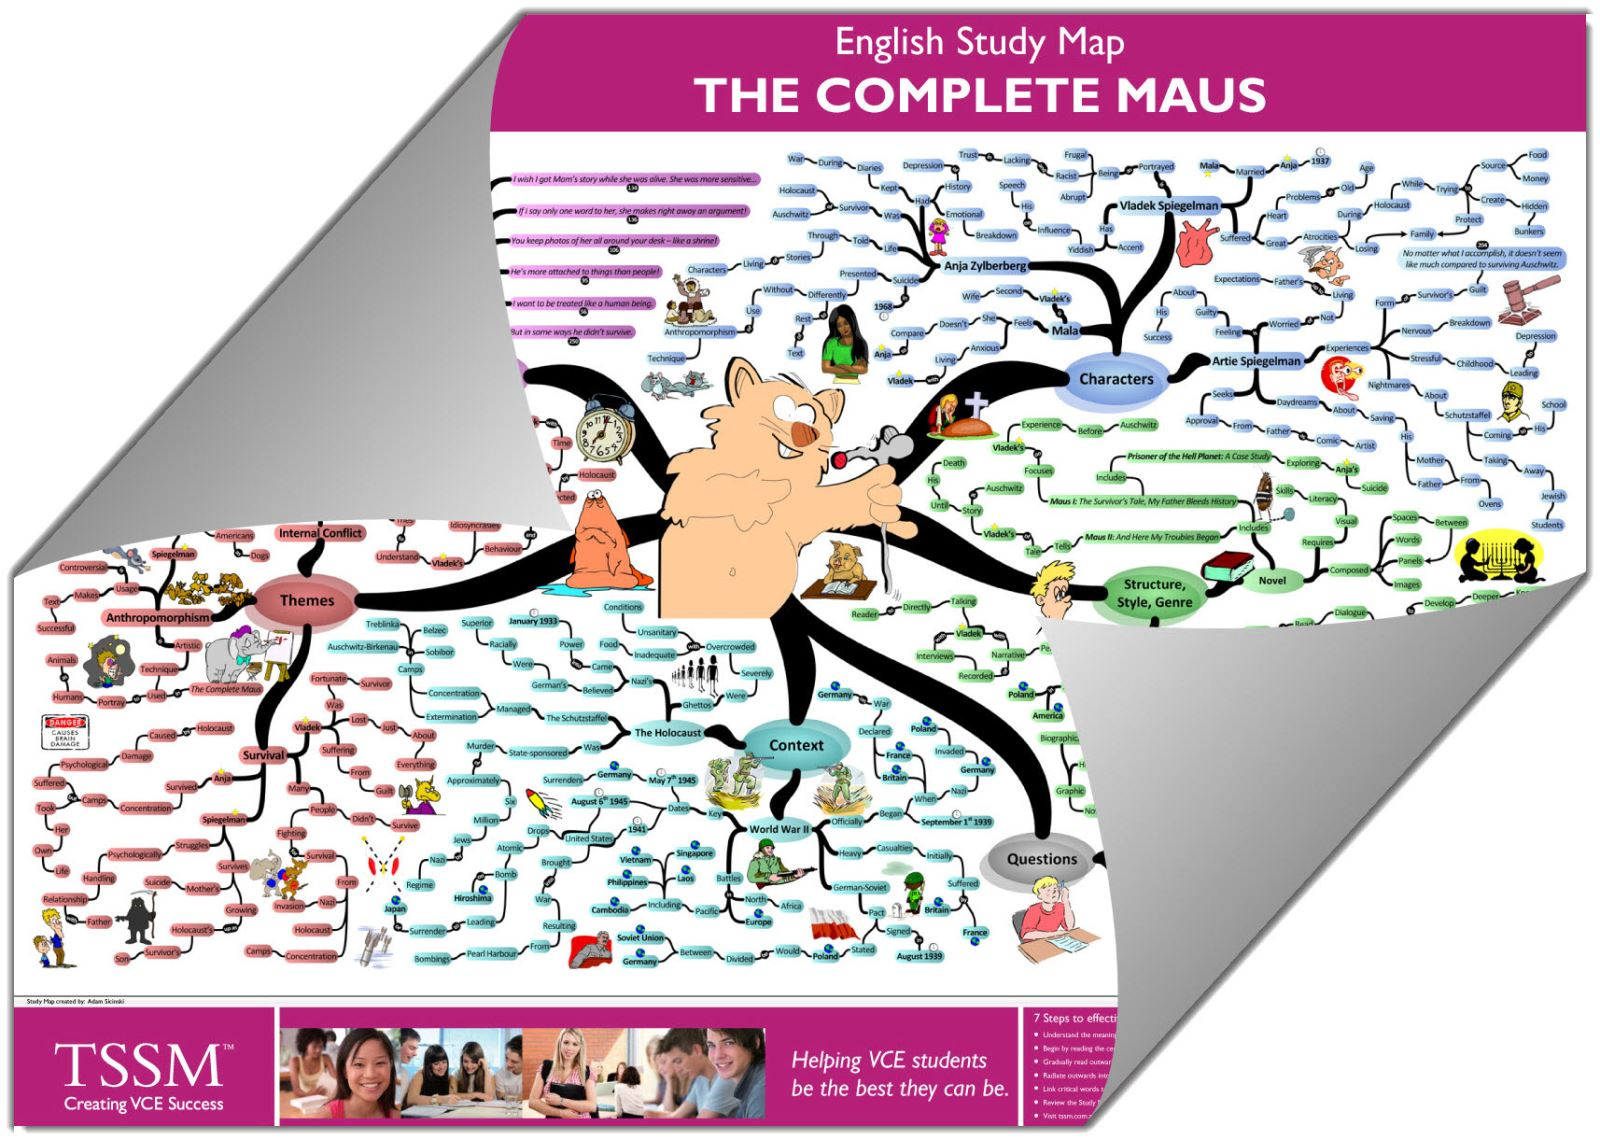 The Complete Maus Study Map